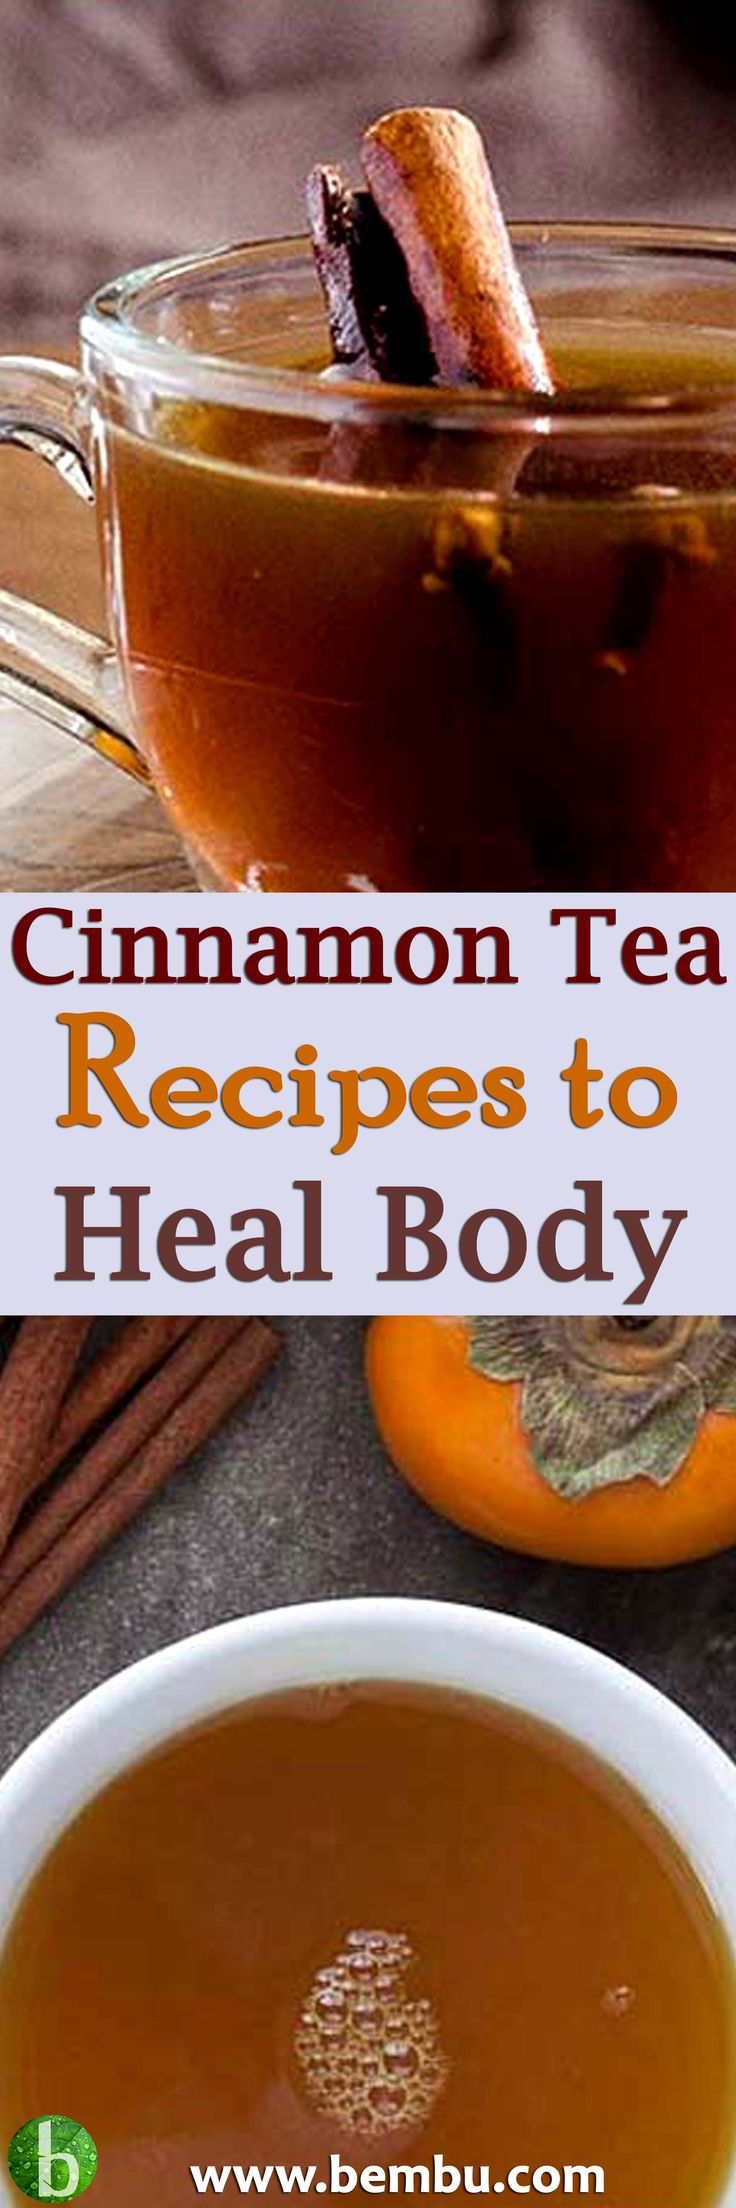 Cinnamon tea is a convenient way to get a spice that has been used for thousands of years ... Health Tips │ Health Ideas │Healthy Food │Health │Food │Vitamin │Drinks │Tea │Protein │Coffee #Health #Ideas #Tips #Vitamin #Healthyfood #Food #Vitamin #Drinks #